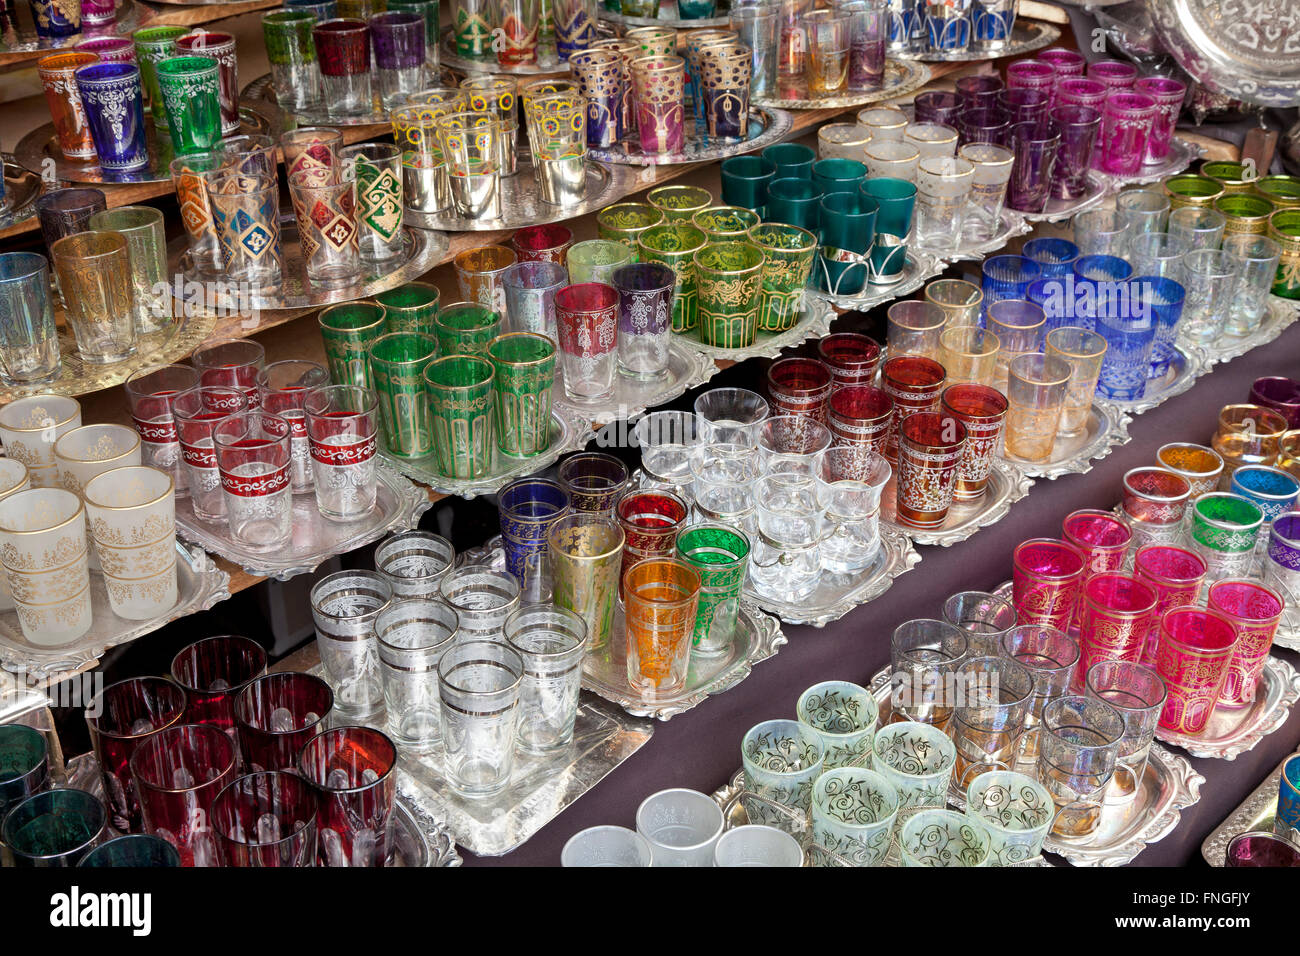 Moroccan glassware for sale in the souk of Marrakesh, Morocco - Stock Image